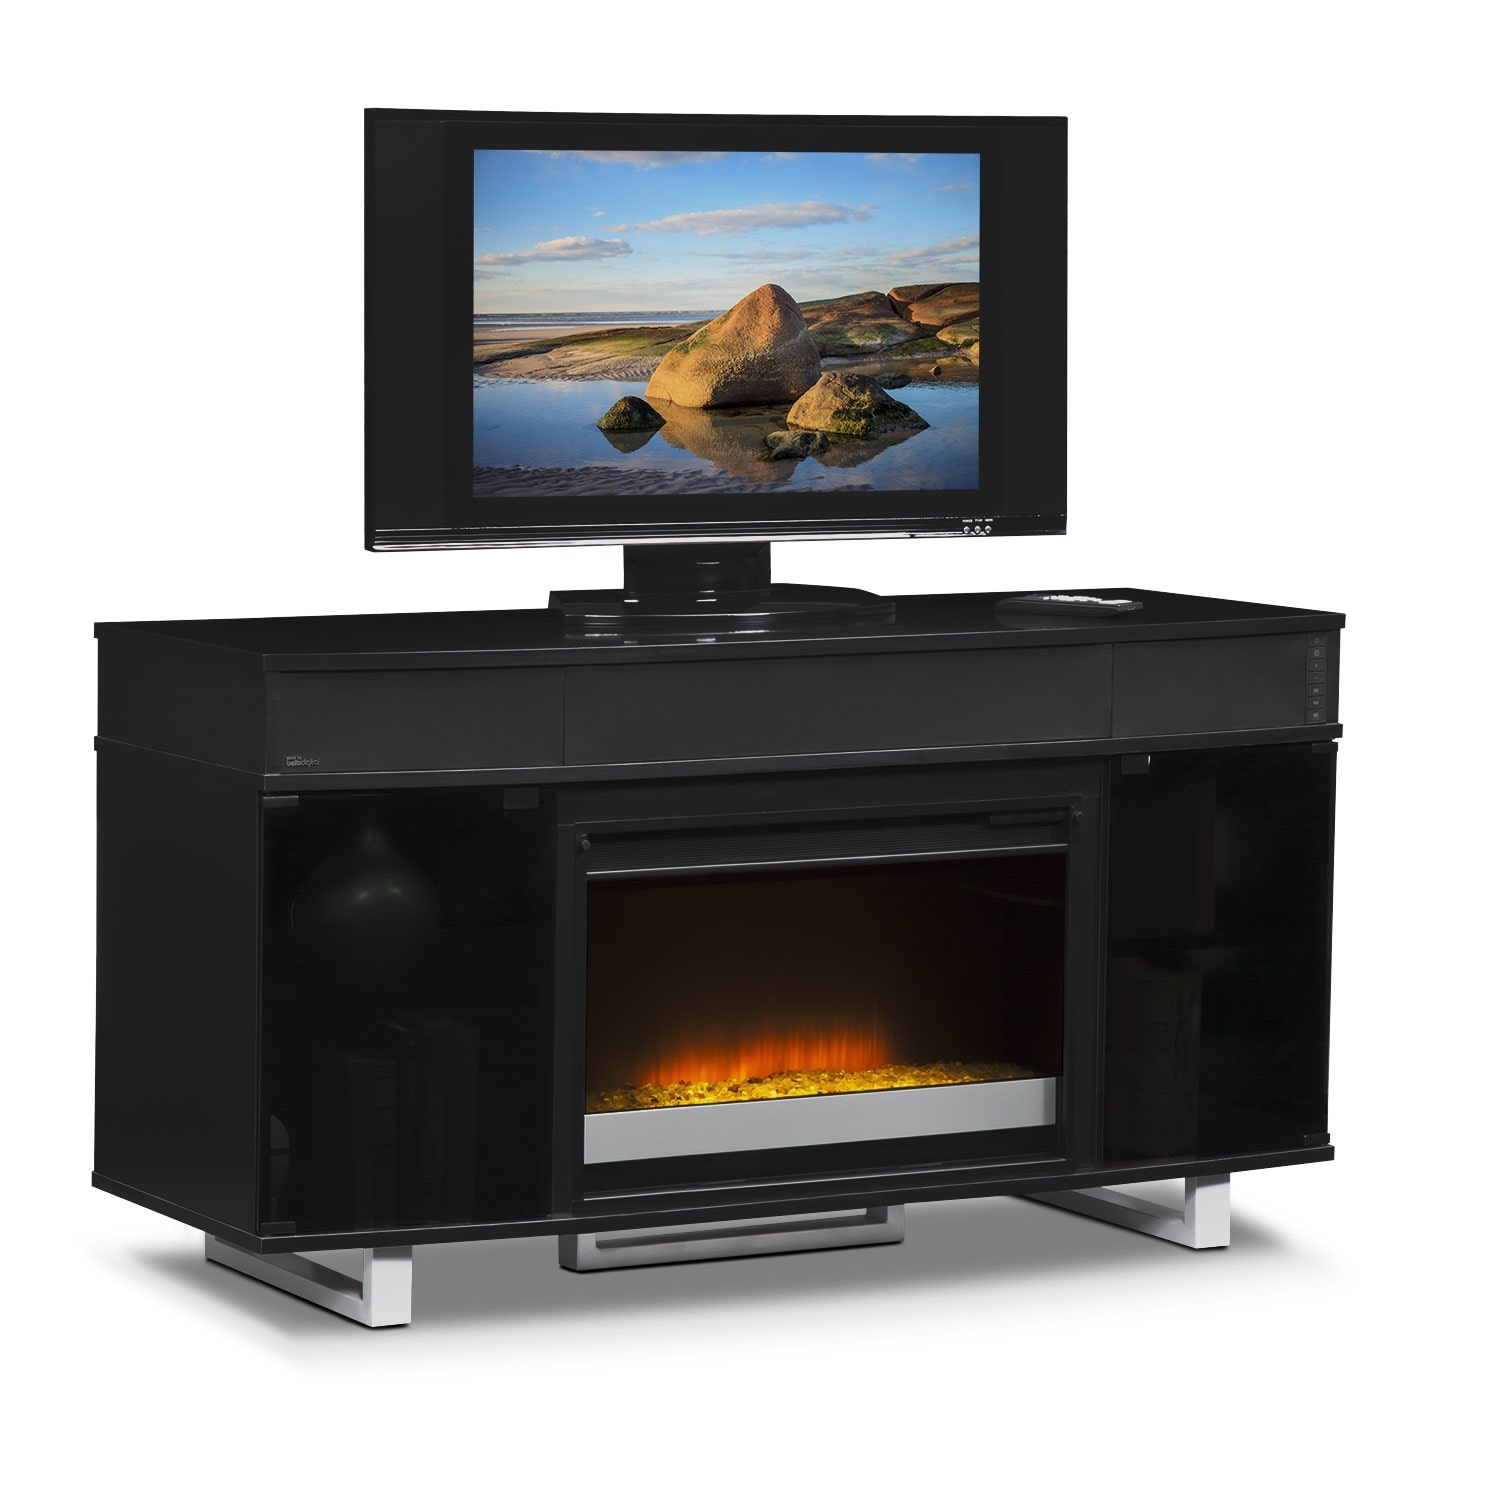 Pacer 56 Contemporary Fireplace Tv Stand With Sound Bar Black Value City Furniture